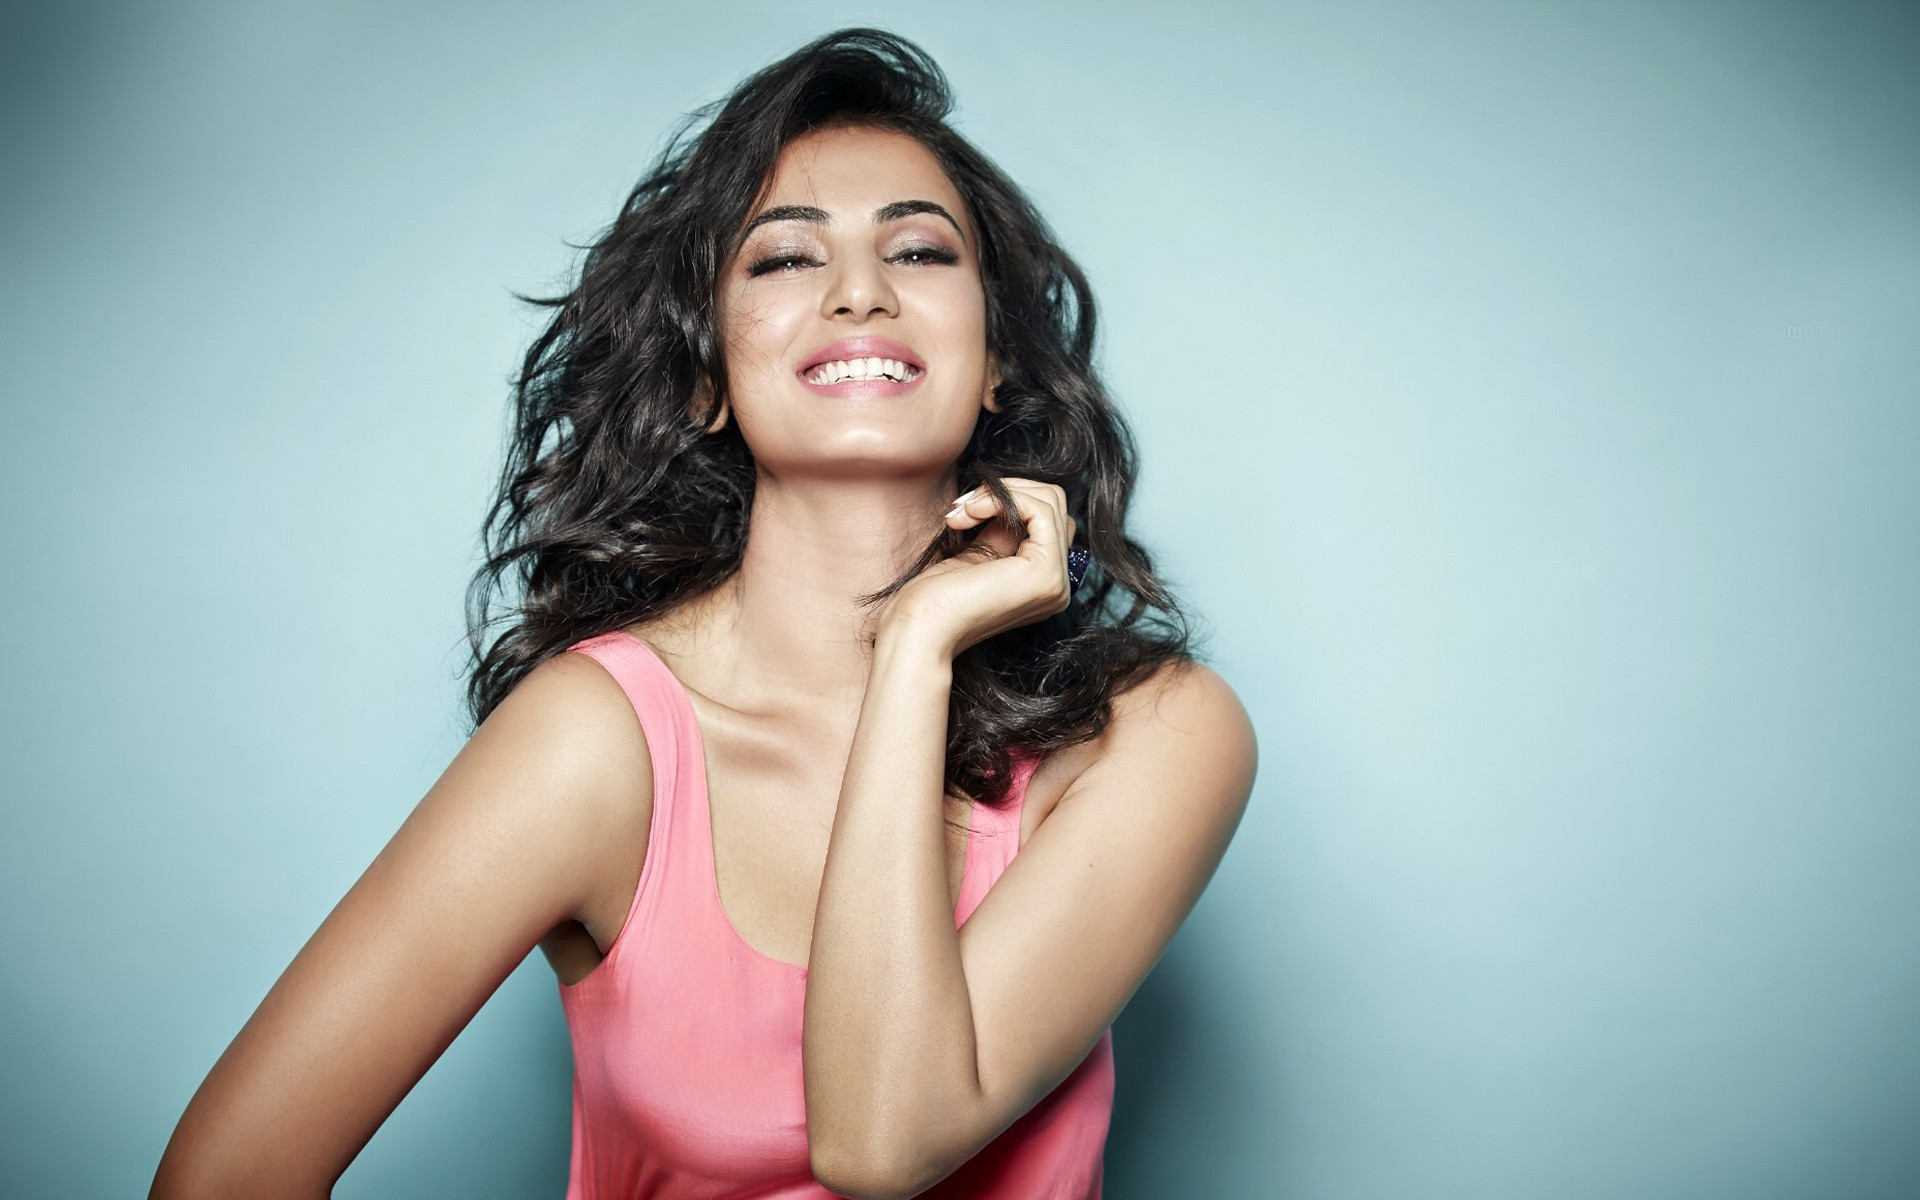 1280x720 sonal chauhan 720p hd 4k wallpapers, images, backgrounds